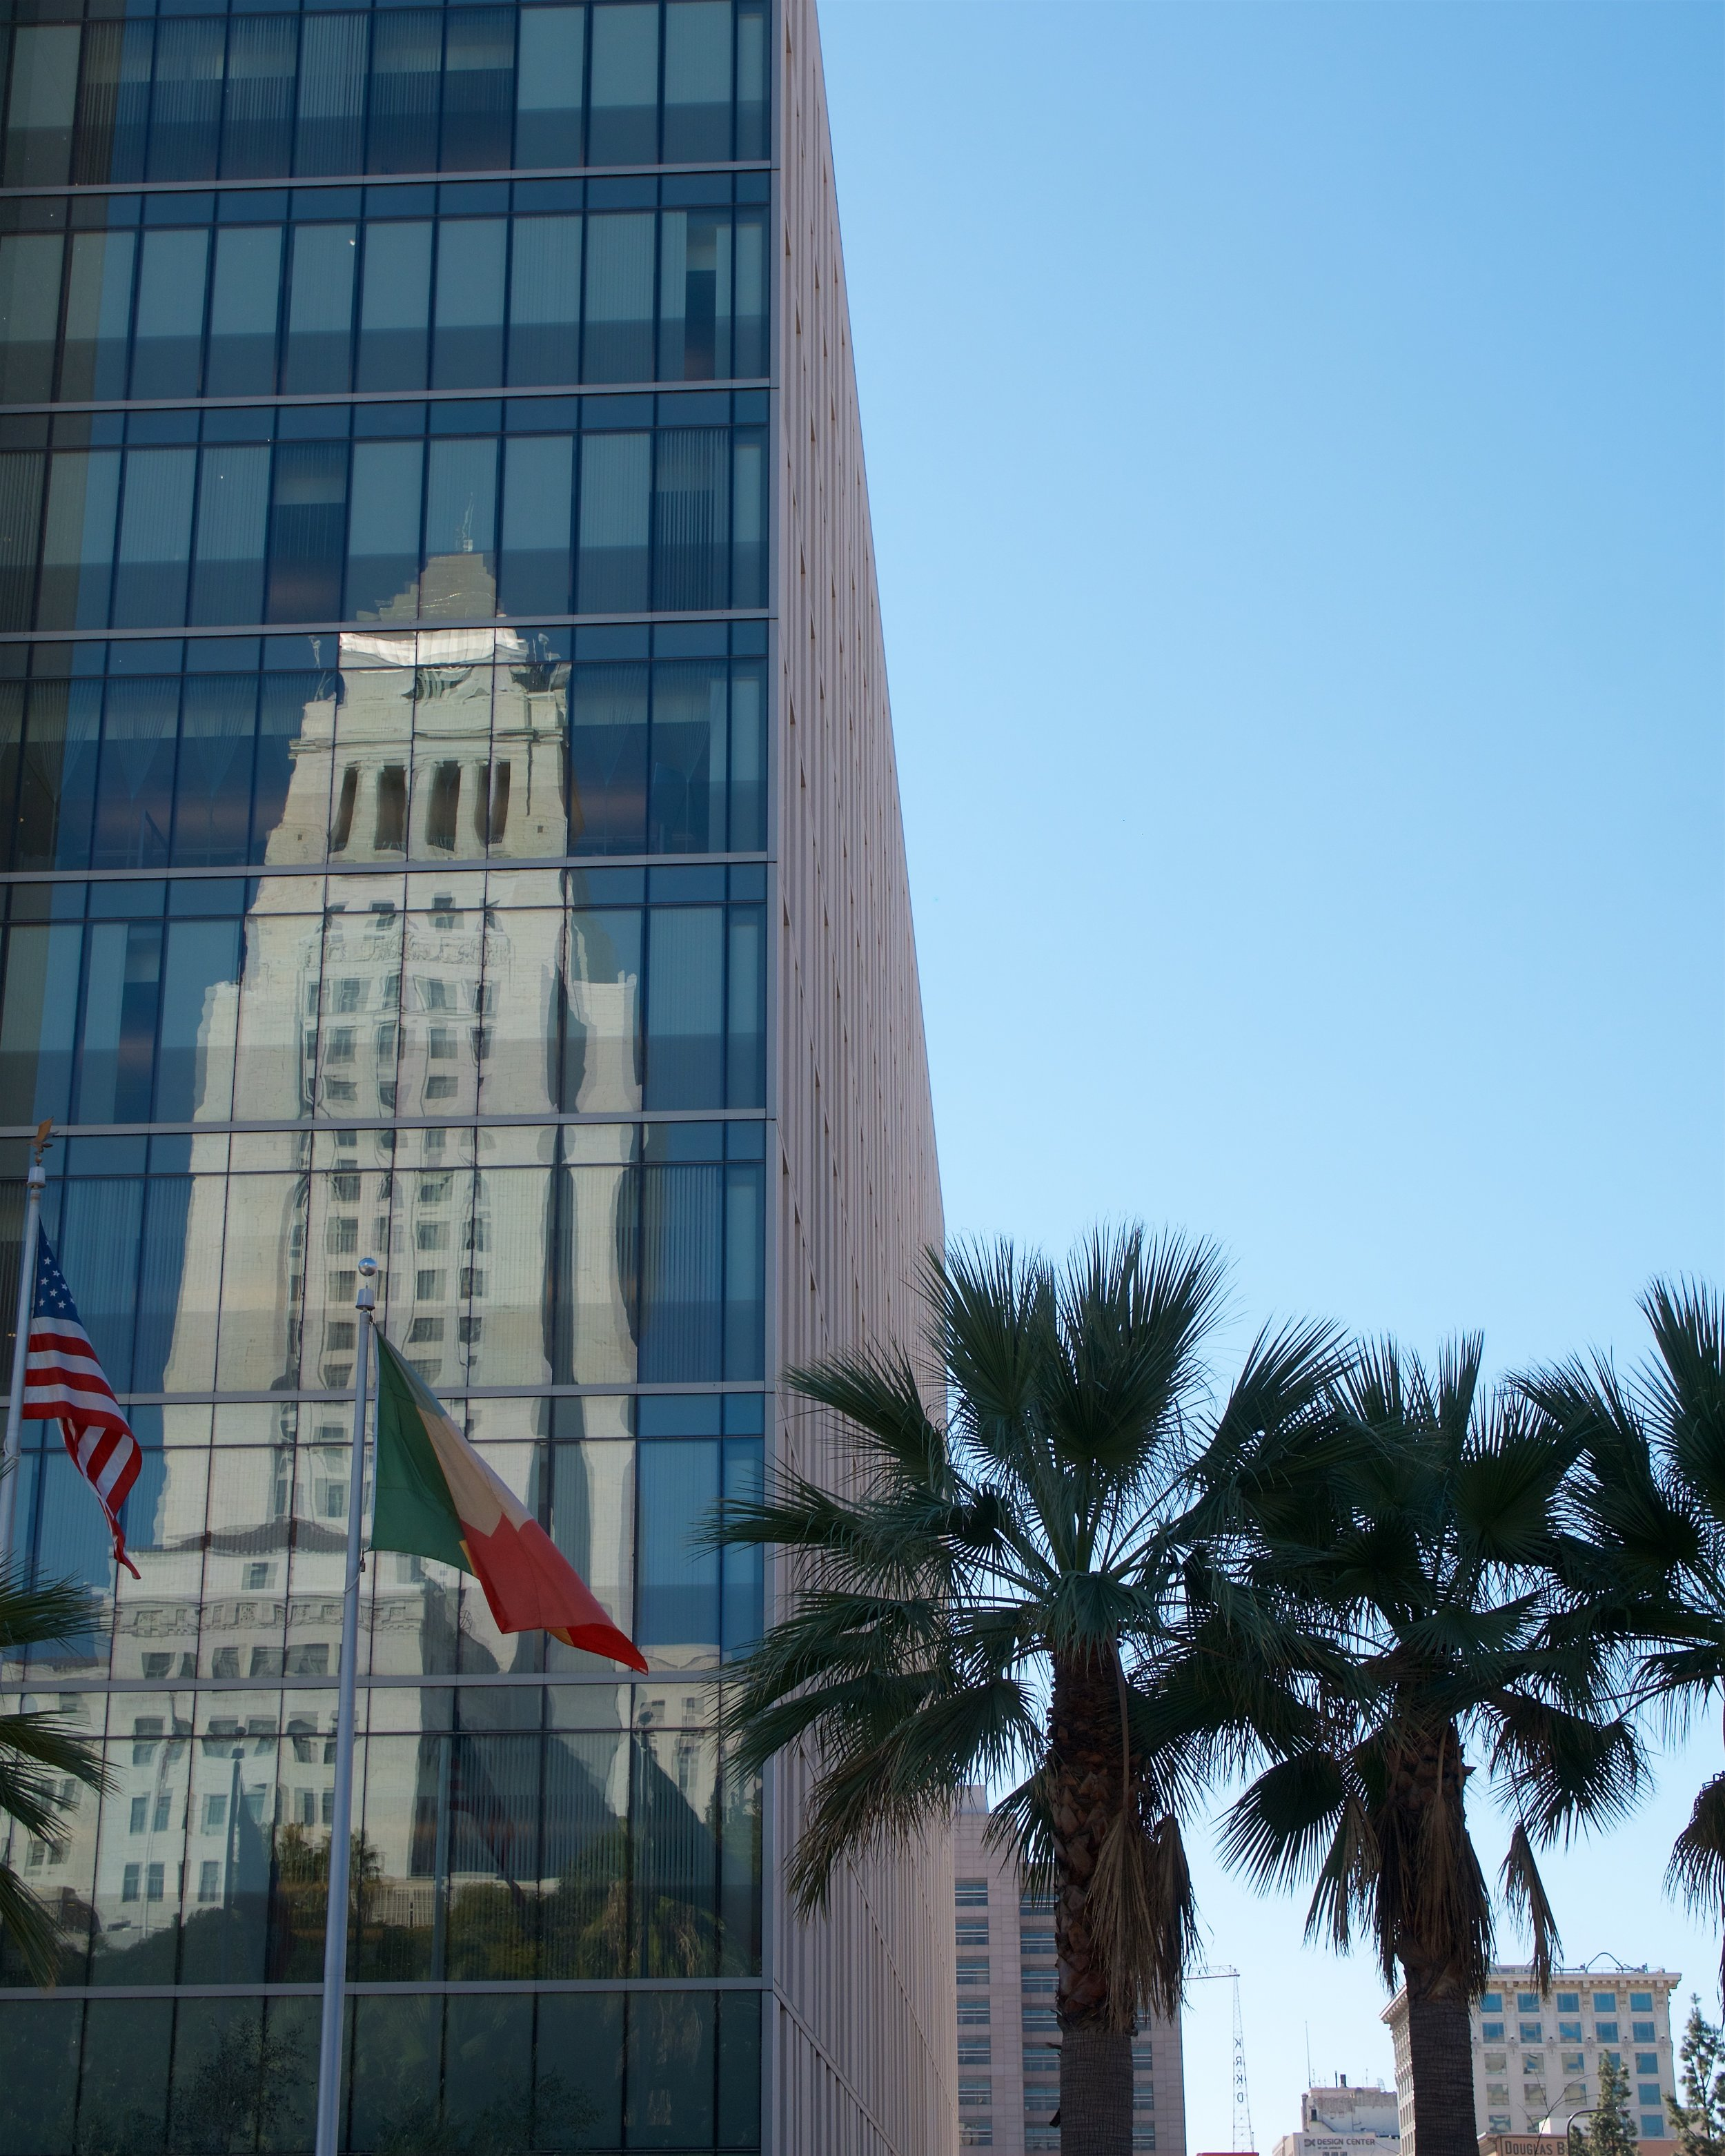 City Hall reflected in the Los Angeles Police Department building